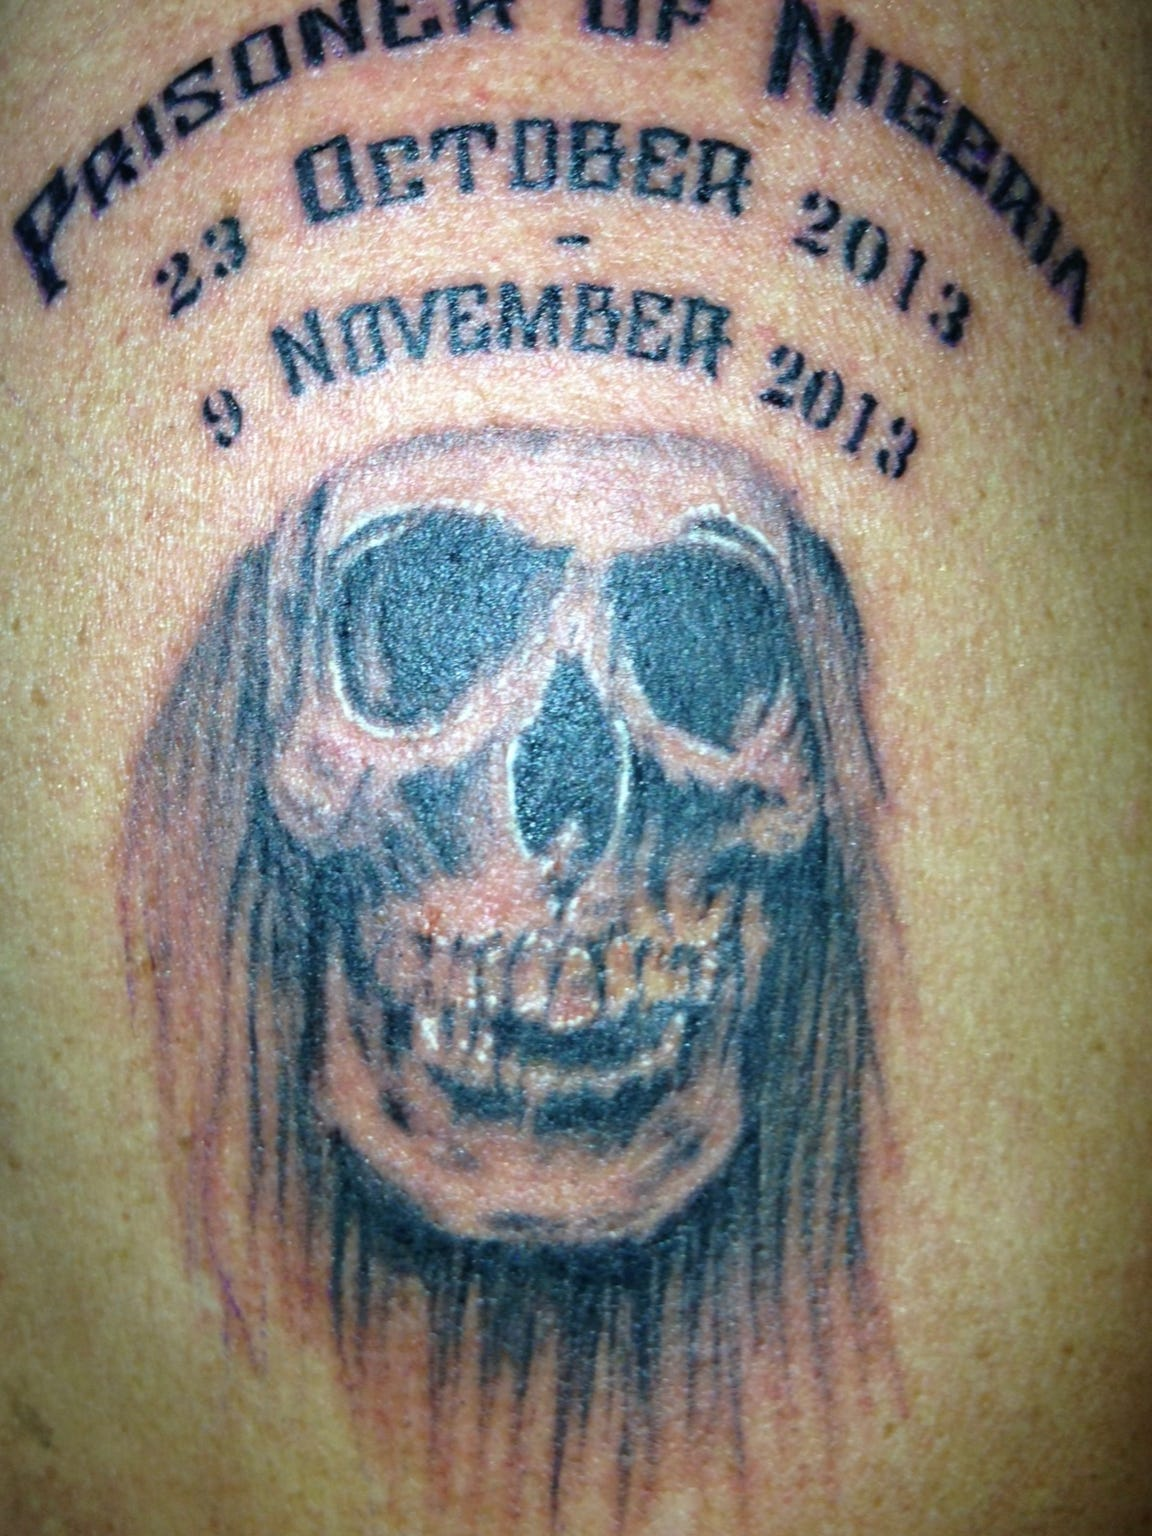 Wren Thomas' tattoo symbolizes his survival after being